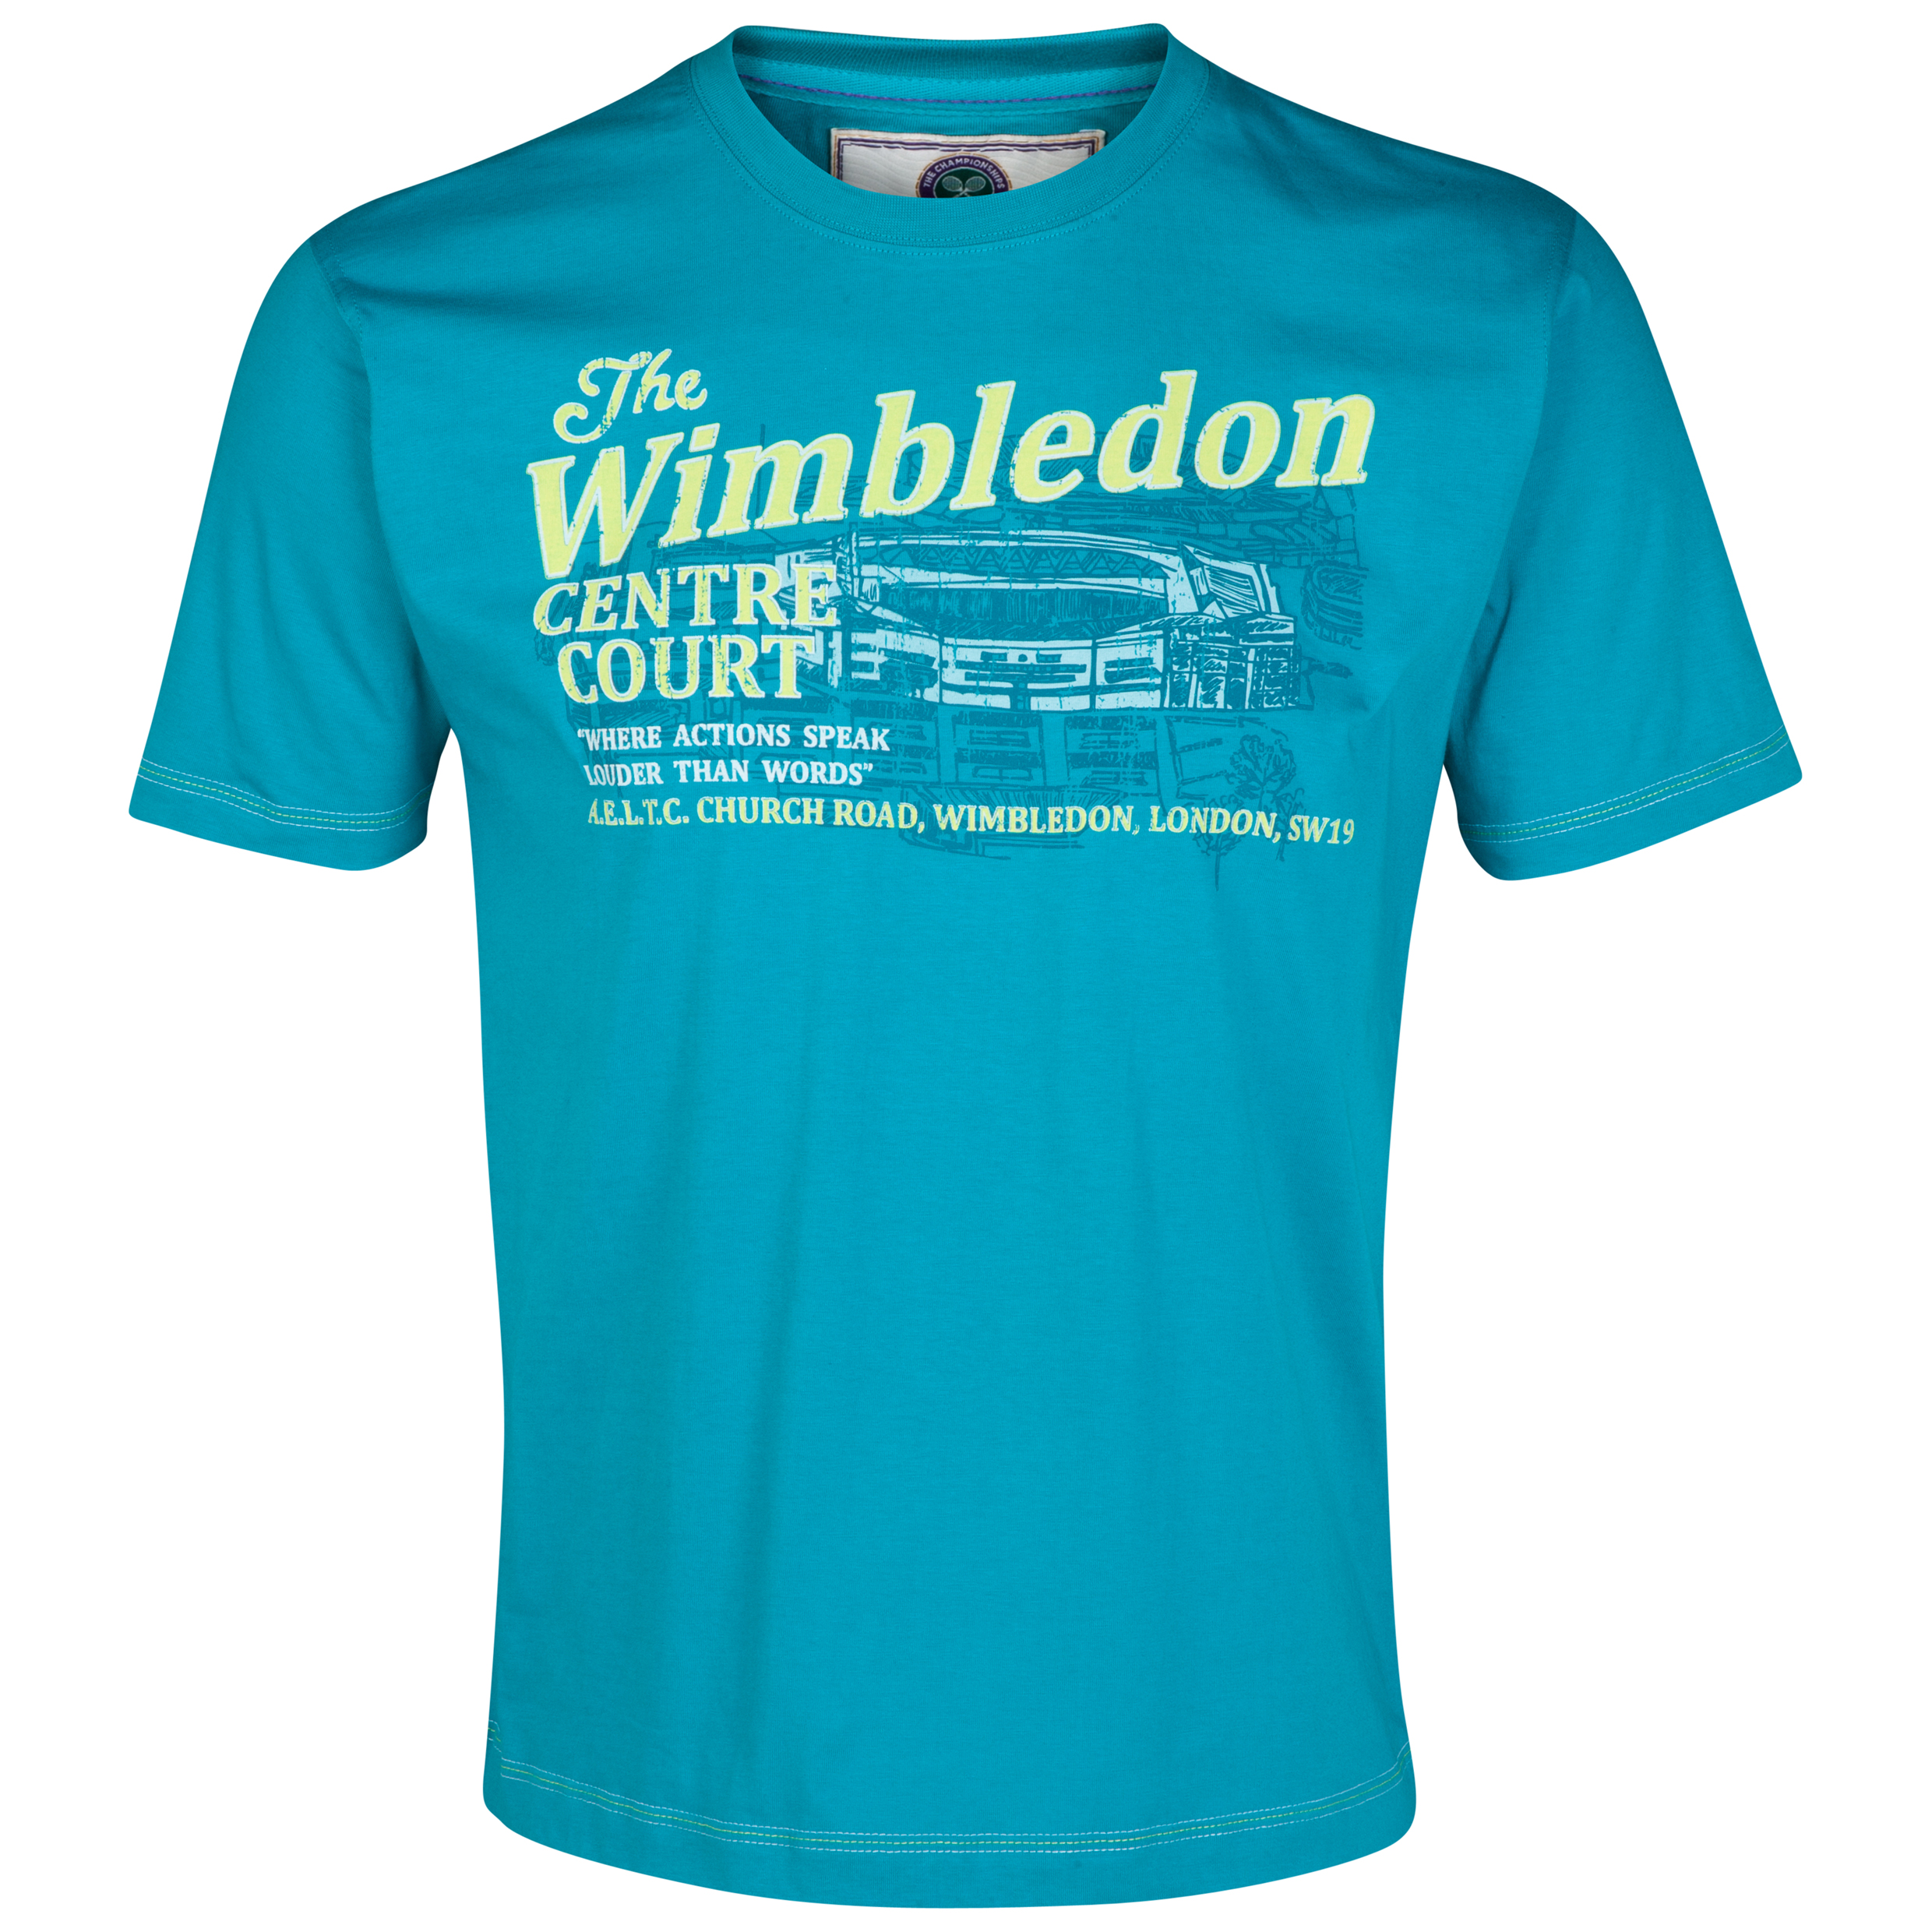 Wimbledon Centre Court T-Shirt Green